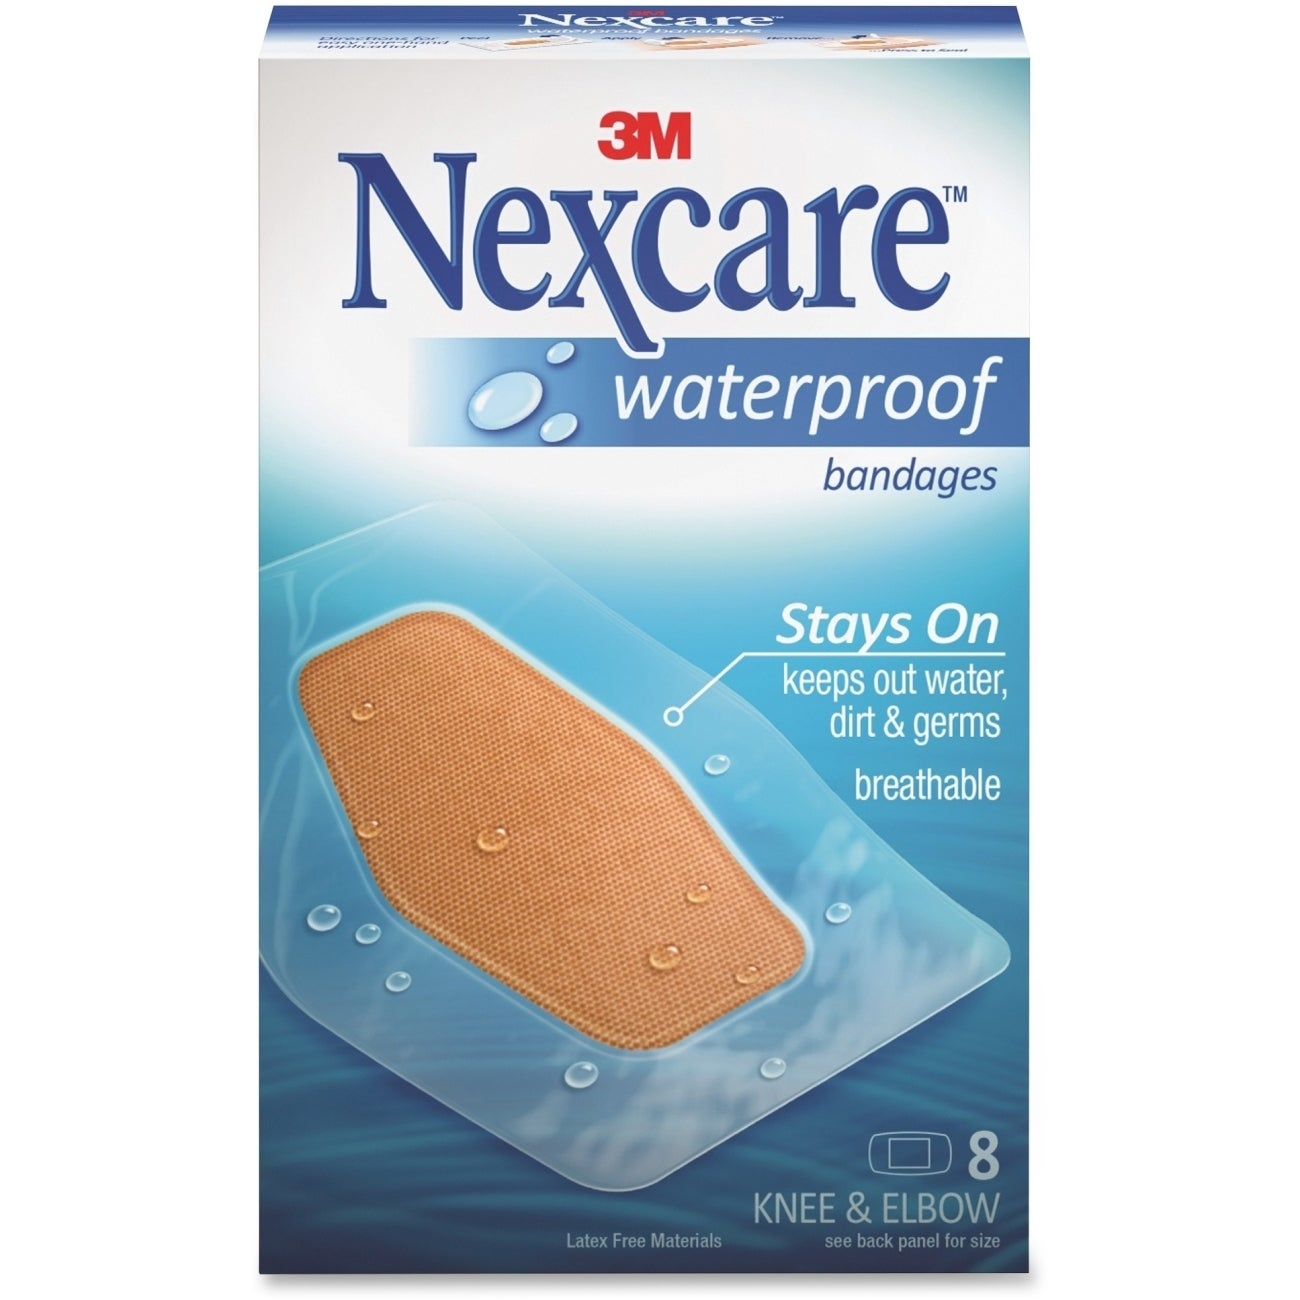 3M Nexcare Waterproof Knee and Elbow Bandages (MMM58108),...